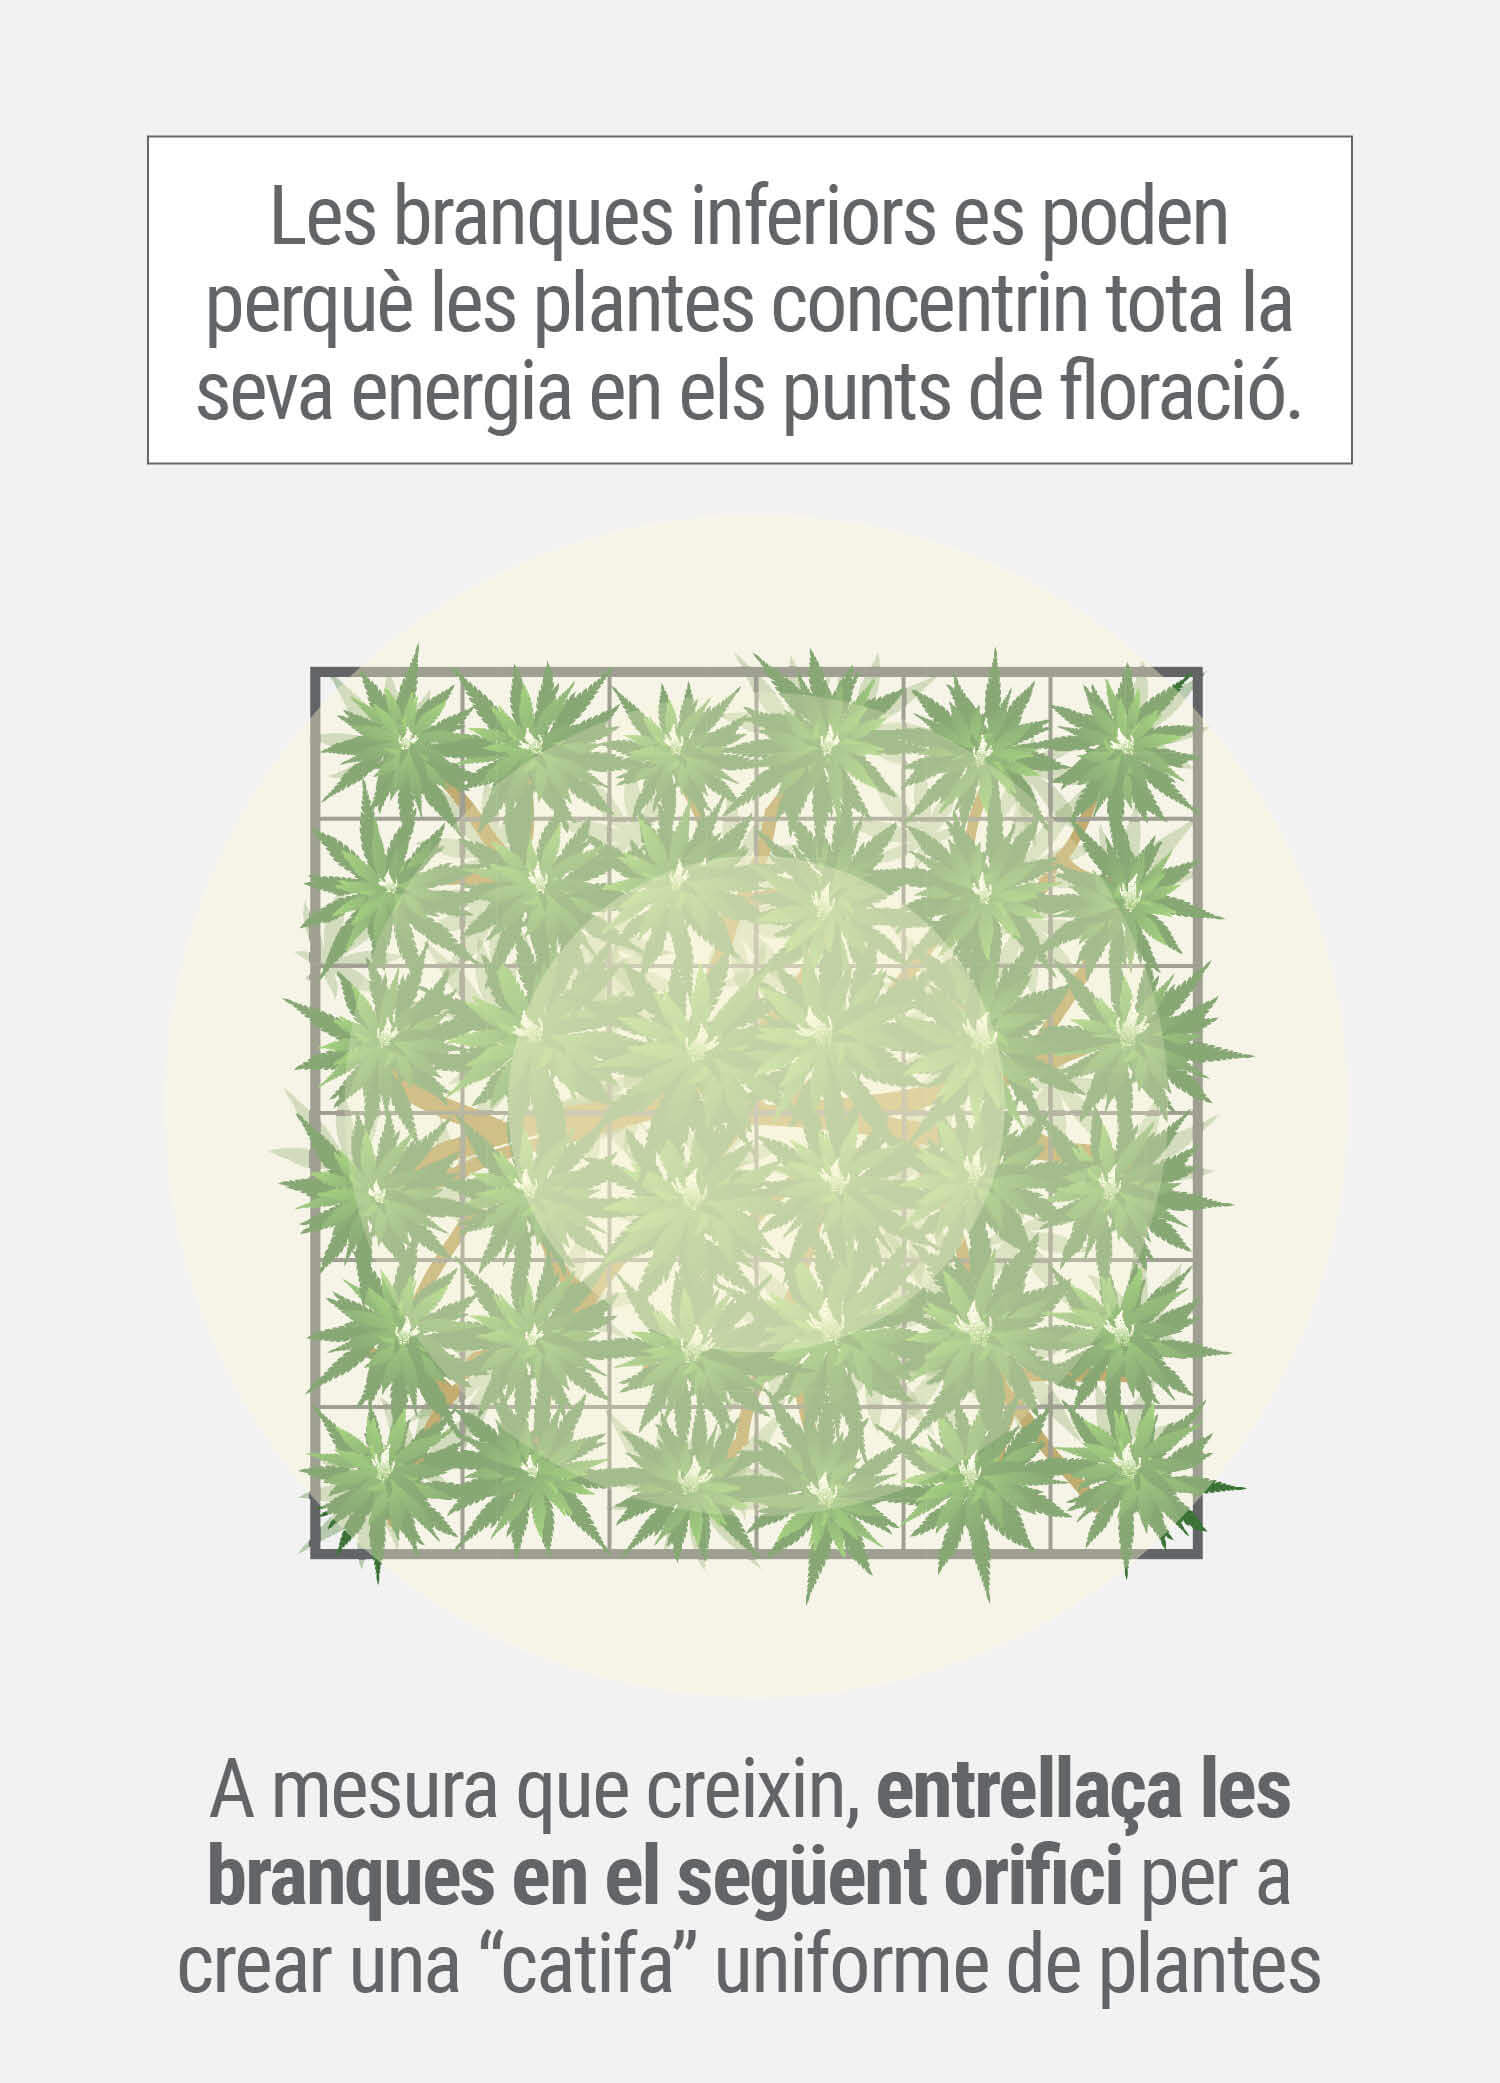 Cultivant cannabis amb el mètode SCROG (Screen of Green) Tercera Fase